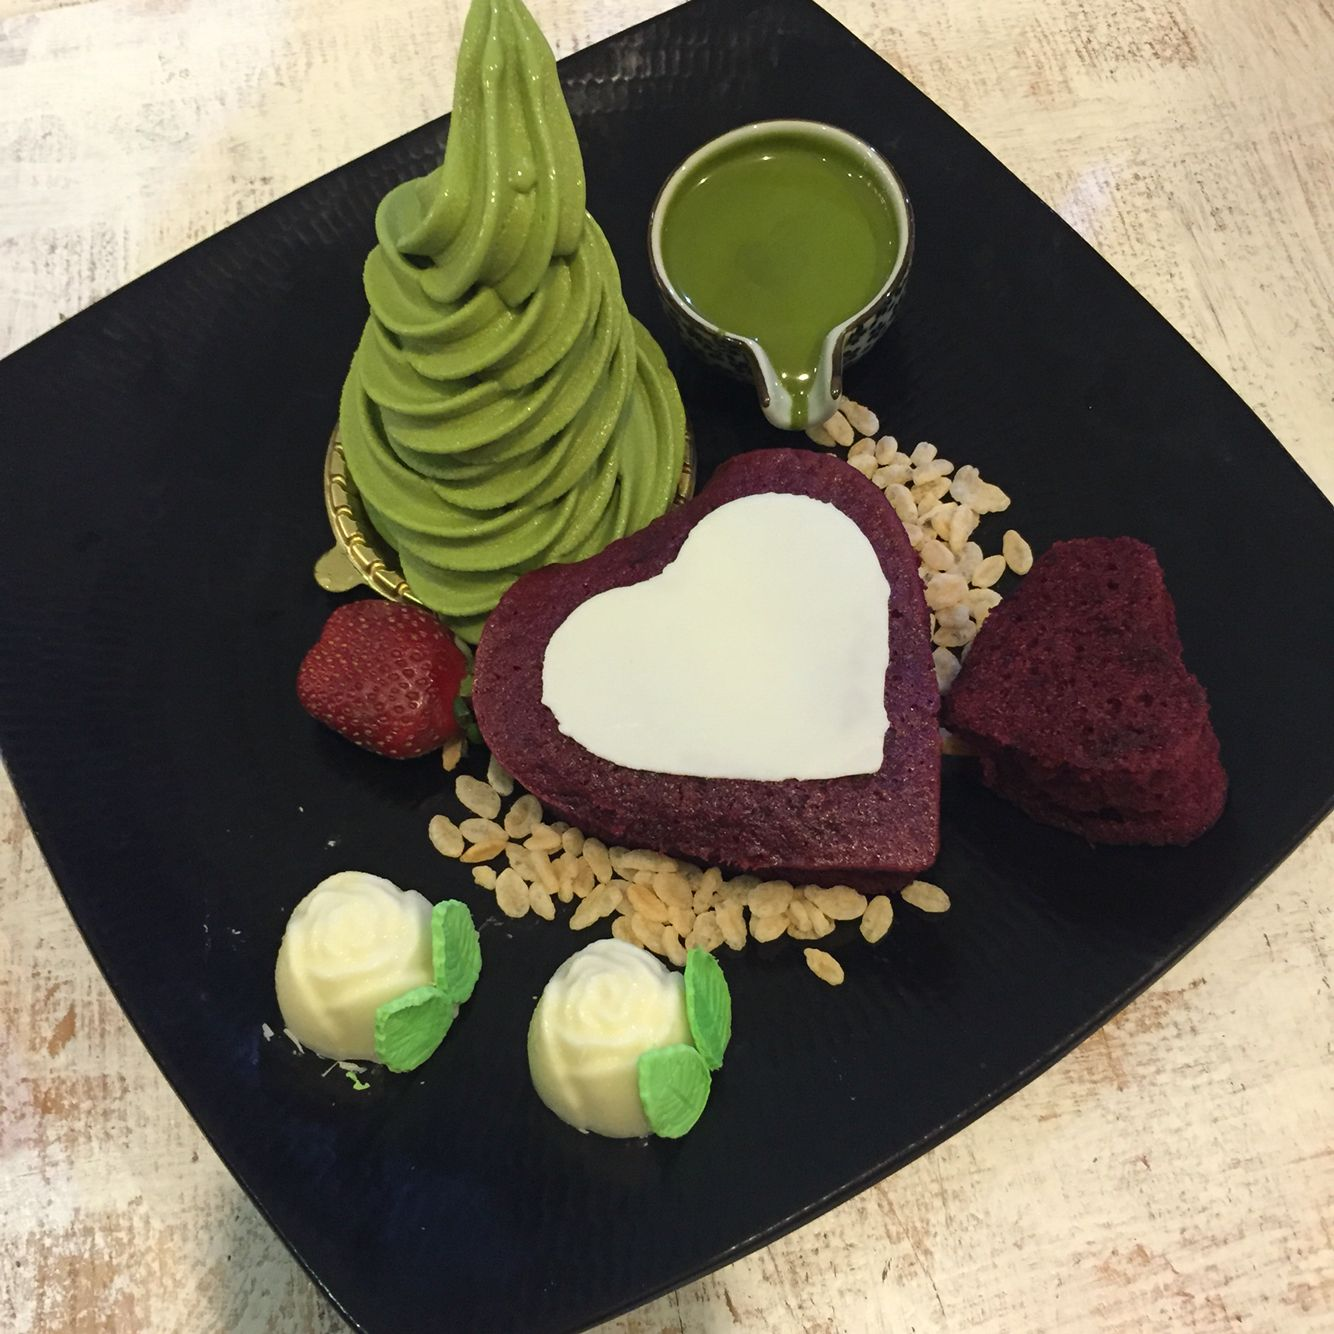 come and try their unique and cute dessert at Shirayuki